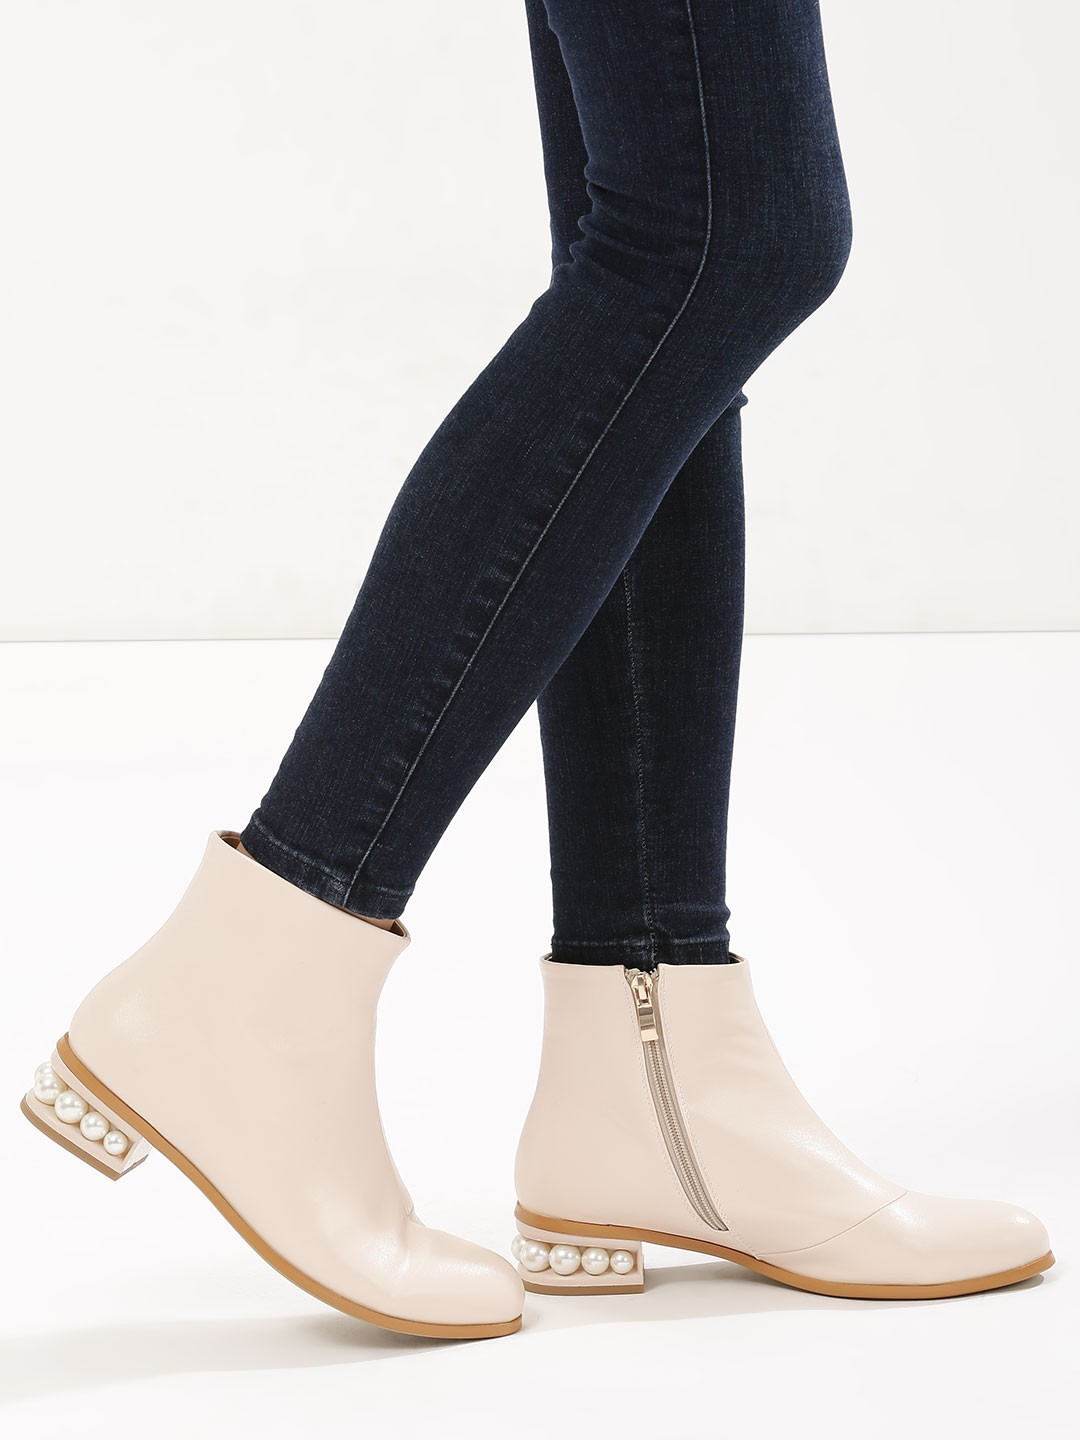 Velvet Army Nude Boots With Pearl Embellished Heels 1